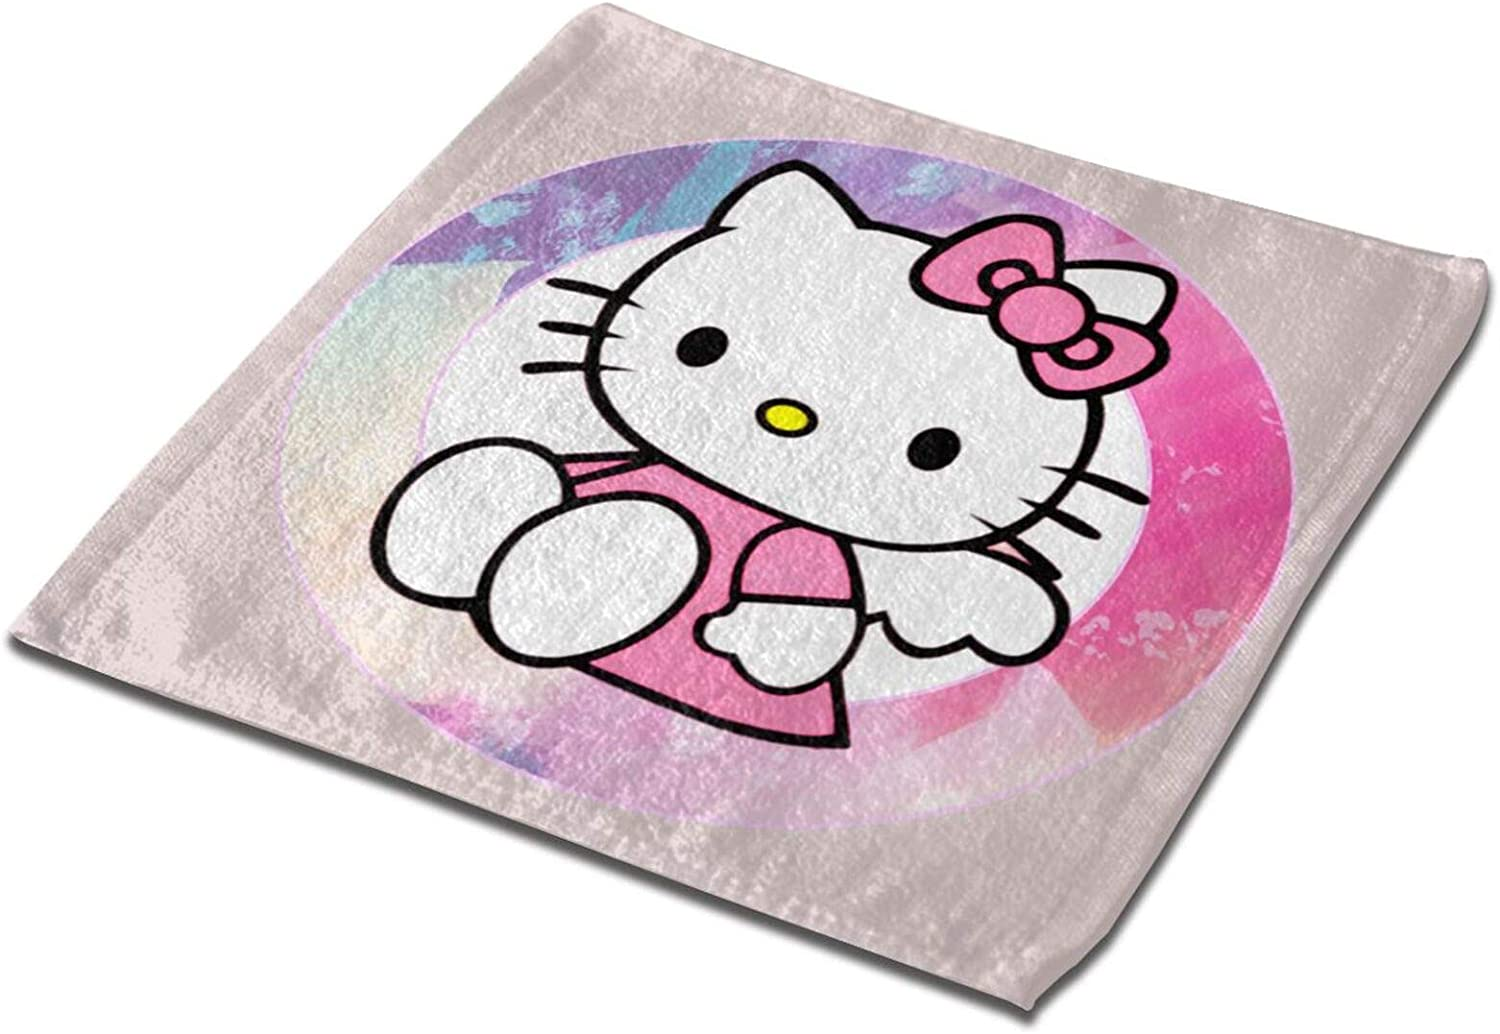 Hello-Kitty Square Towel Microfiber Towel Small Towels Kitchen Towels Square Towel for Bathroom Soft & Absorbent Towels 13X13 Inch